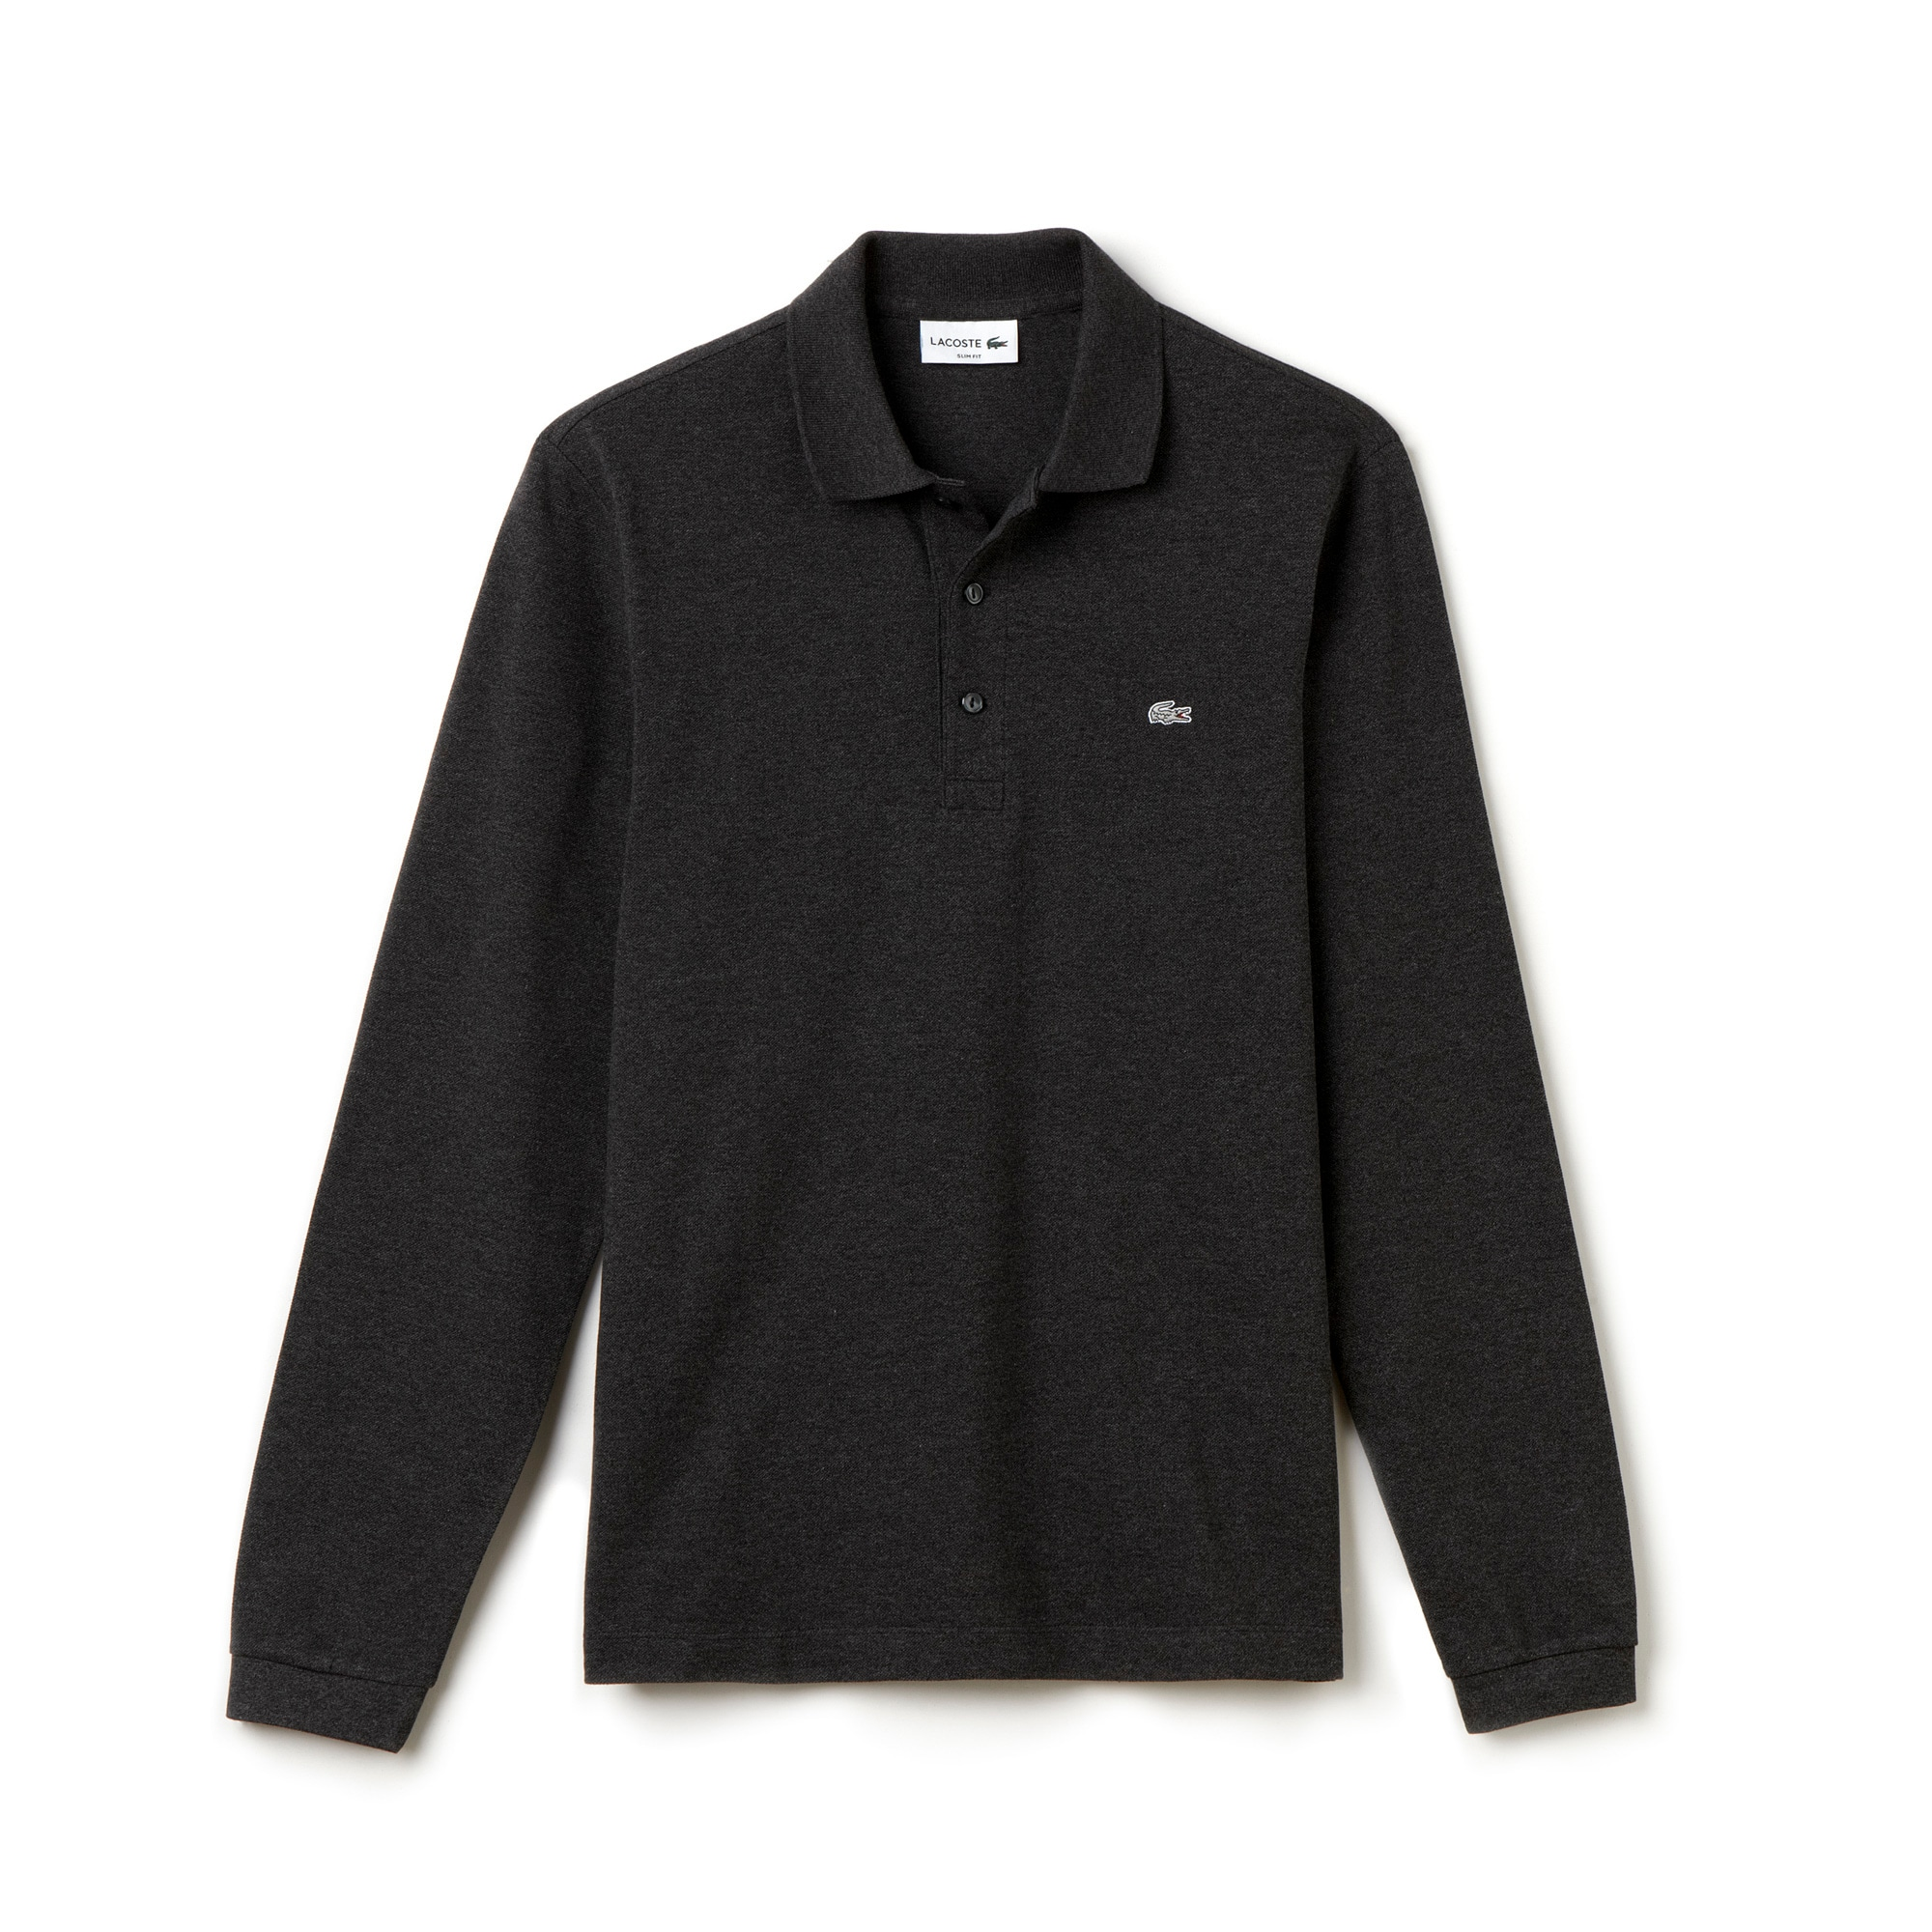 Men's Lacoste Slim Fit Stretch Mini Piqué Polo Shirt